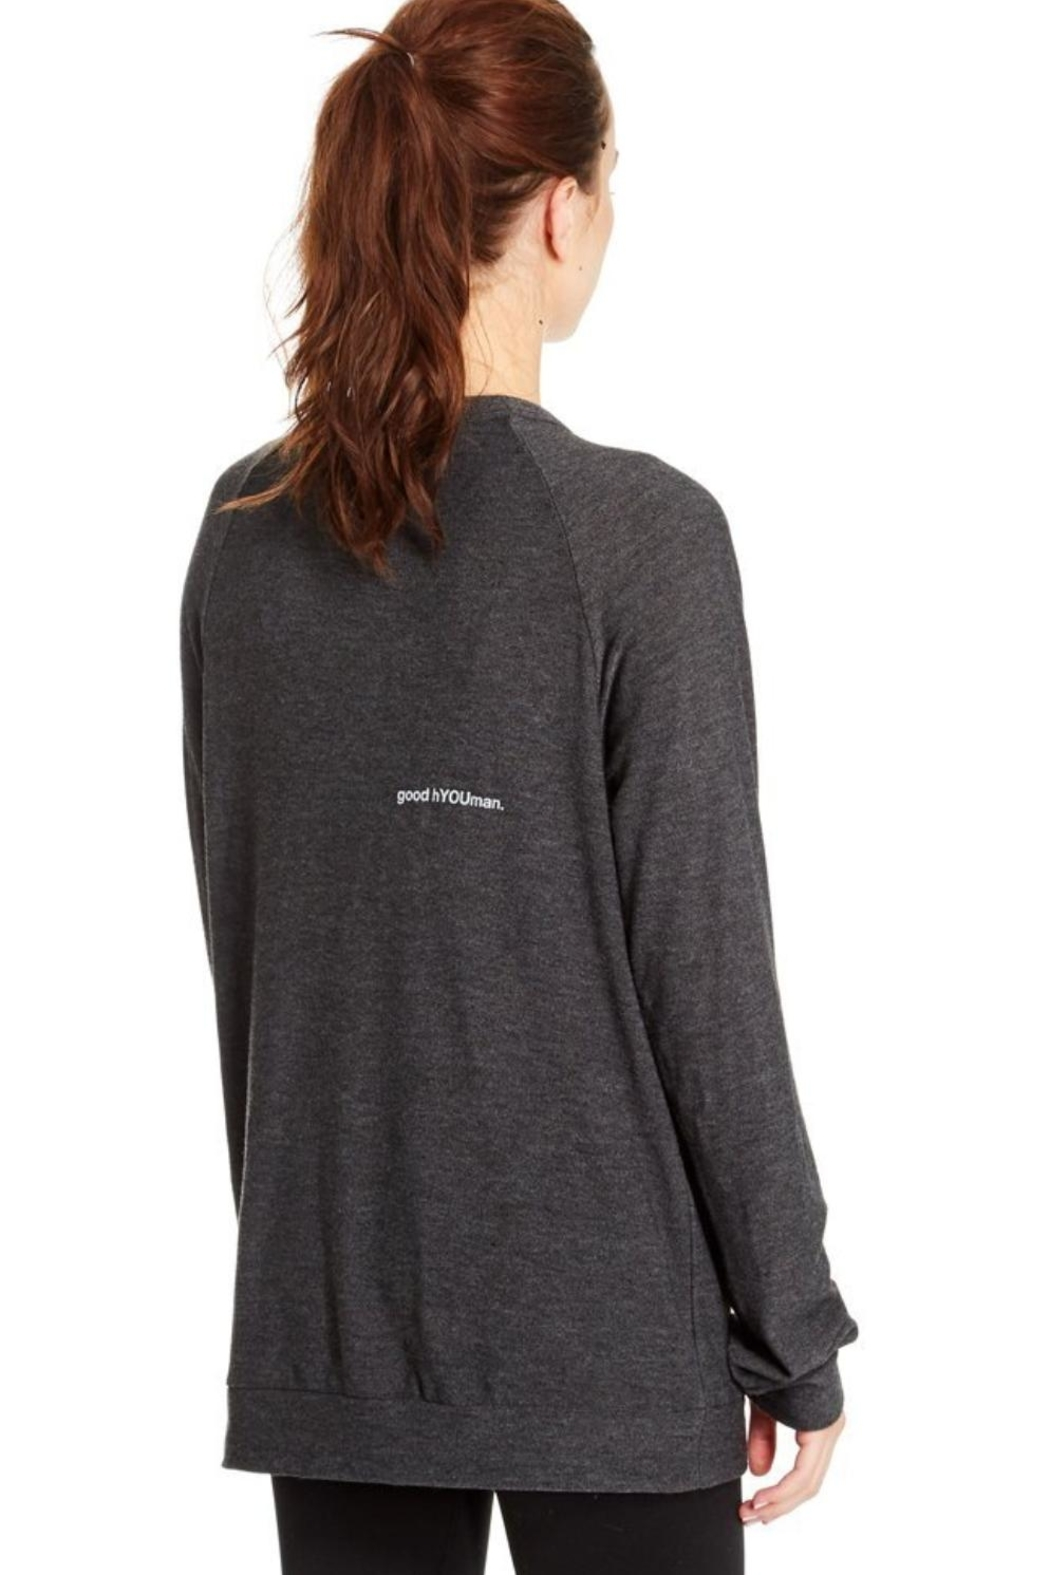 GoodhYOUman Grey Dave Sweater - Side Cropped Image